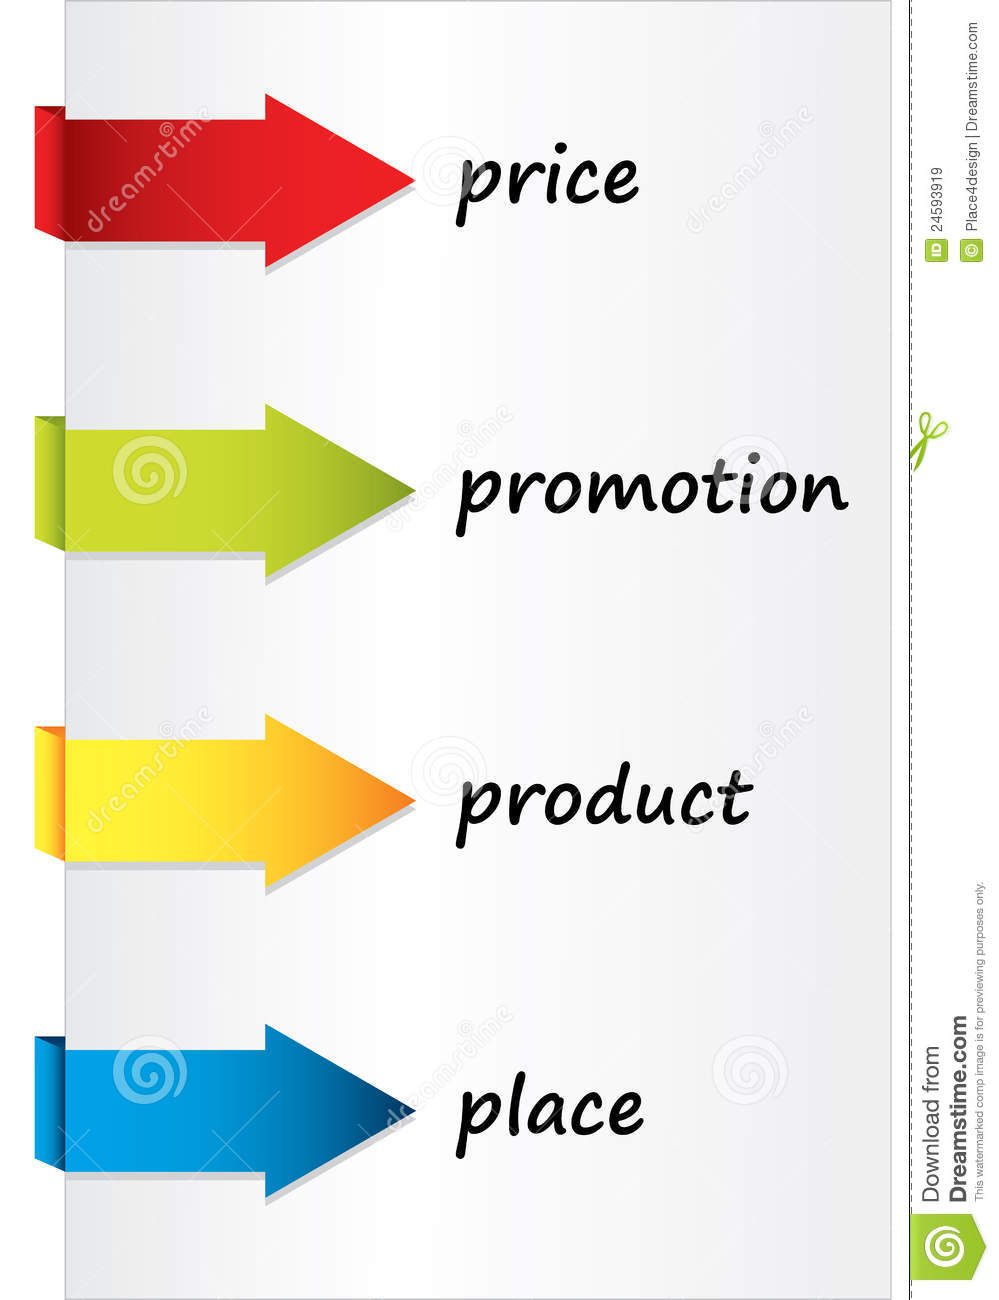 marketing mix price essay Volkswagen marketing mix email contact us faq support ticket discount program we wish to clarify the following: we have no association with 'essay-giantcom to do well in diverse markets the marketing strategy must combine the four elements of the marketing mix - price, product.